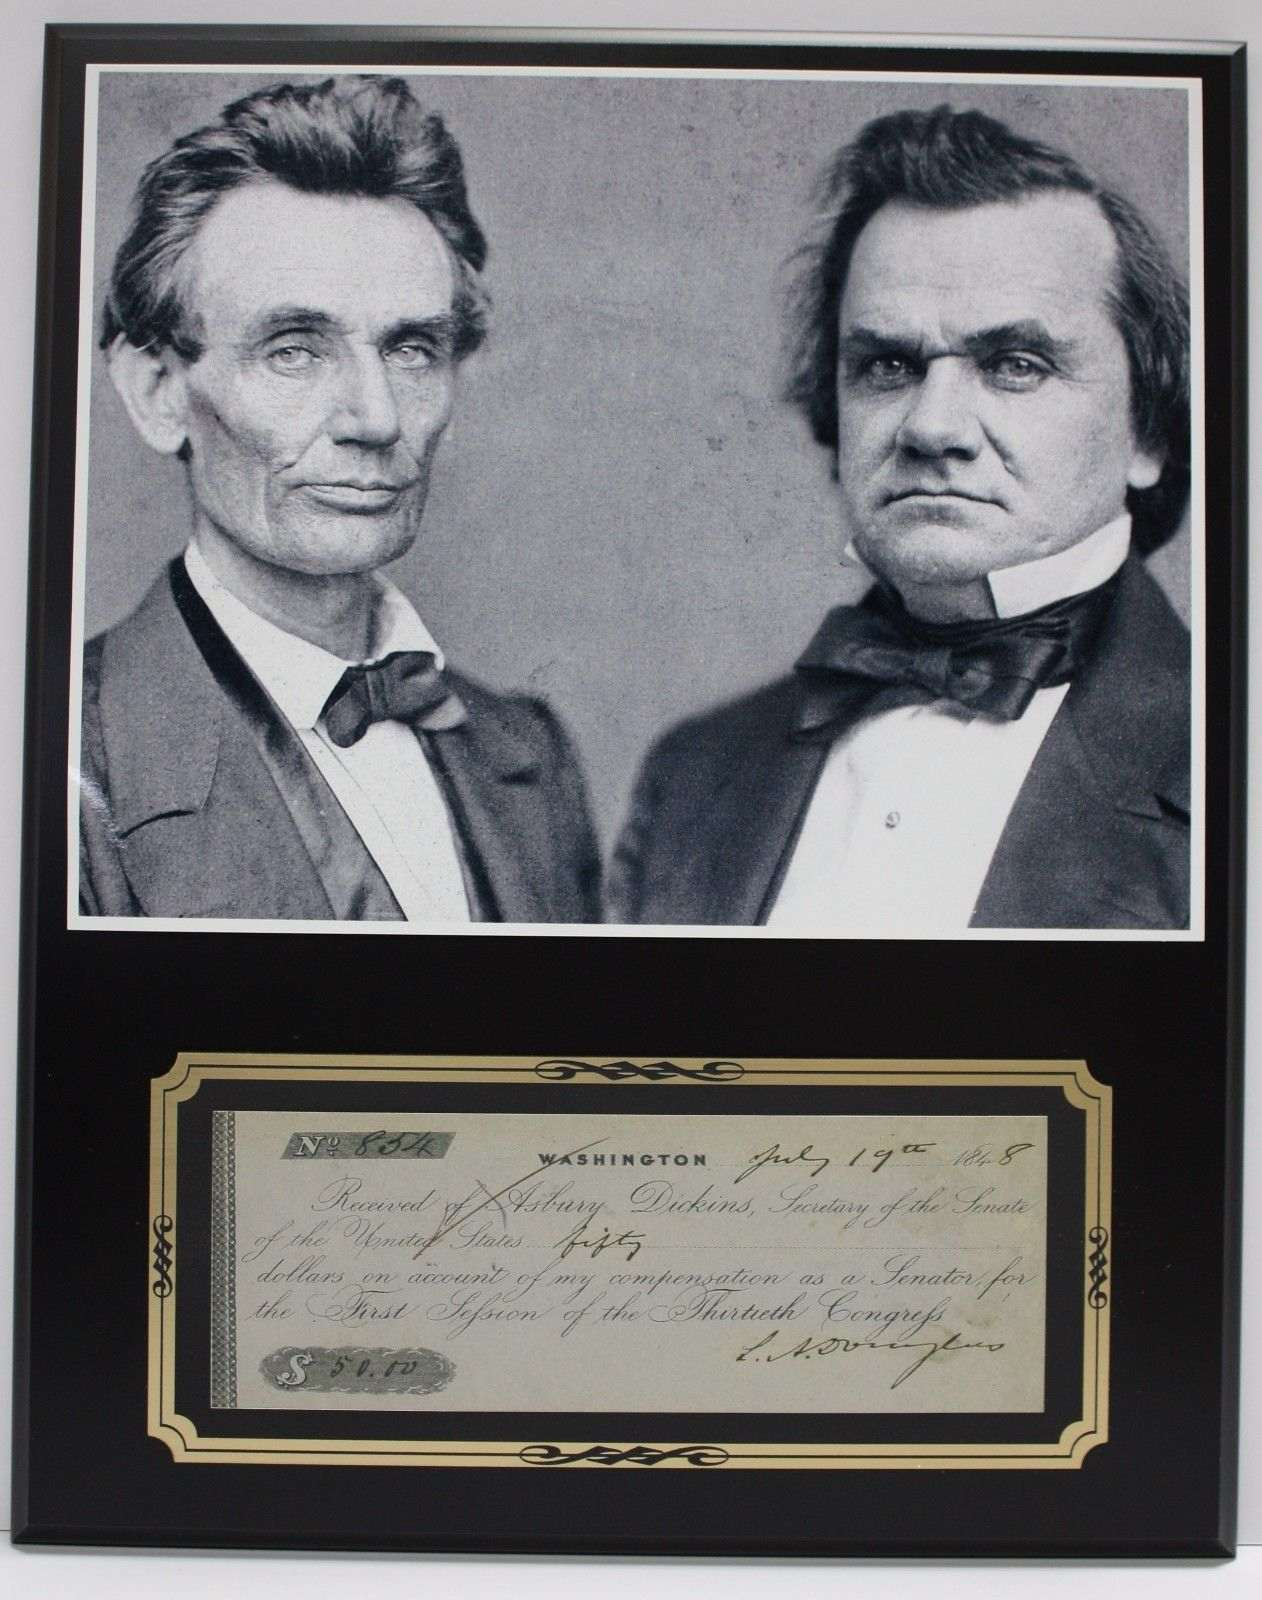 Stephan Douglas Abe Lincoln Reproduction Signed Limited Edition Check Display